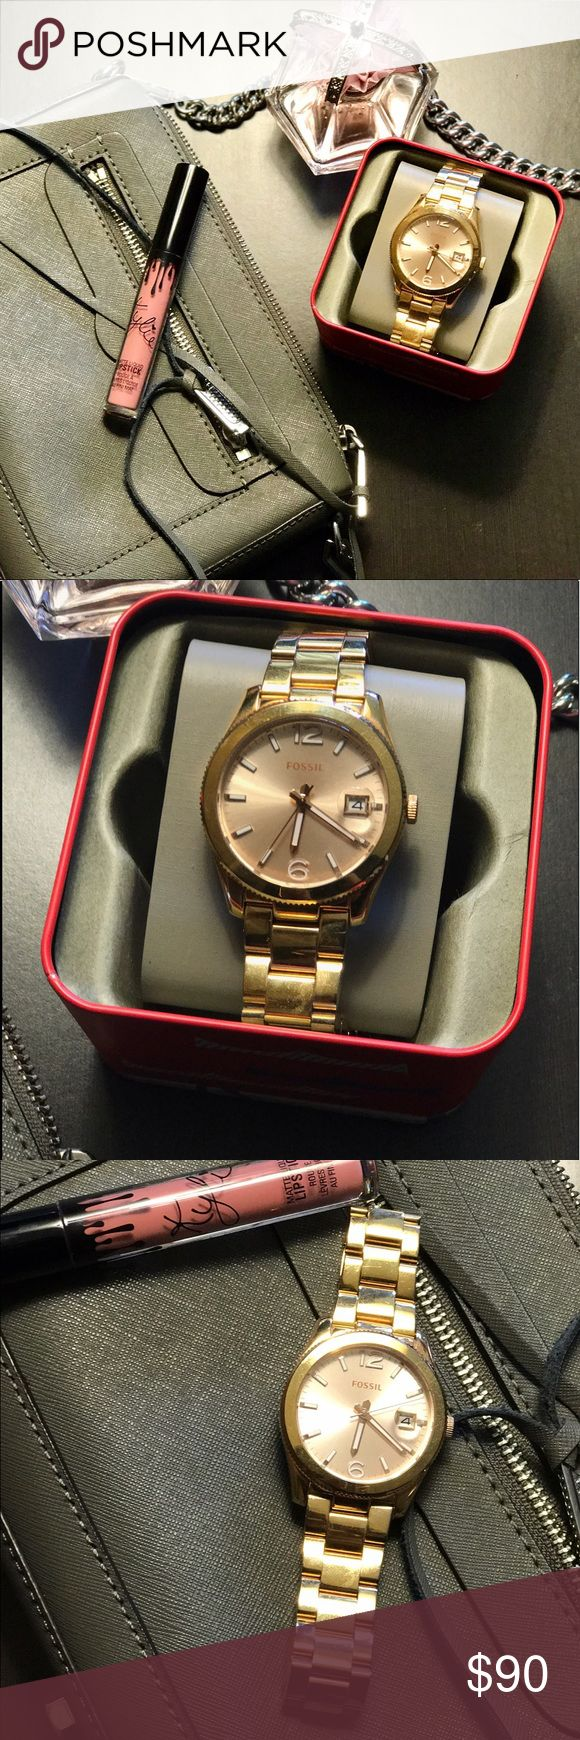 Fossil gold watch Super cute fossil gold watch. Not too heavy on wrist. Has been worn a few times so there are slight marks on the metal but nothing on the face. Comes with box! Fossil Jewelry